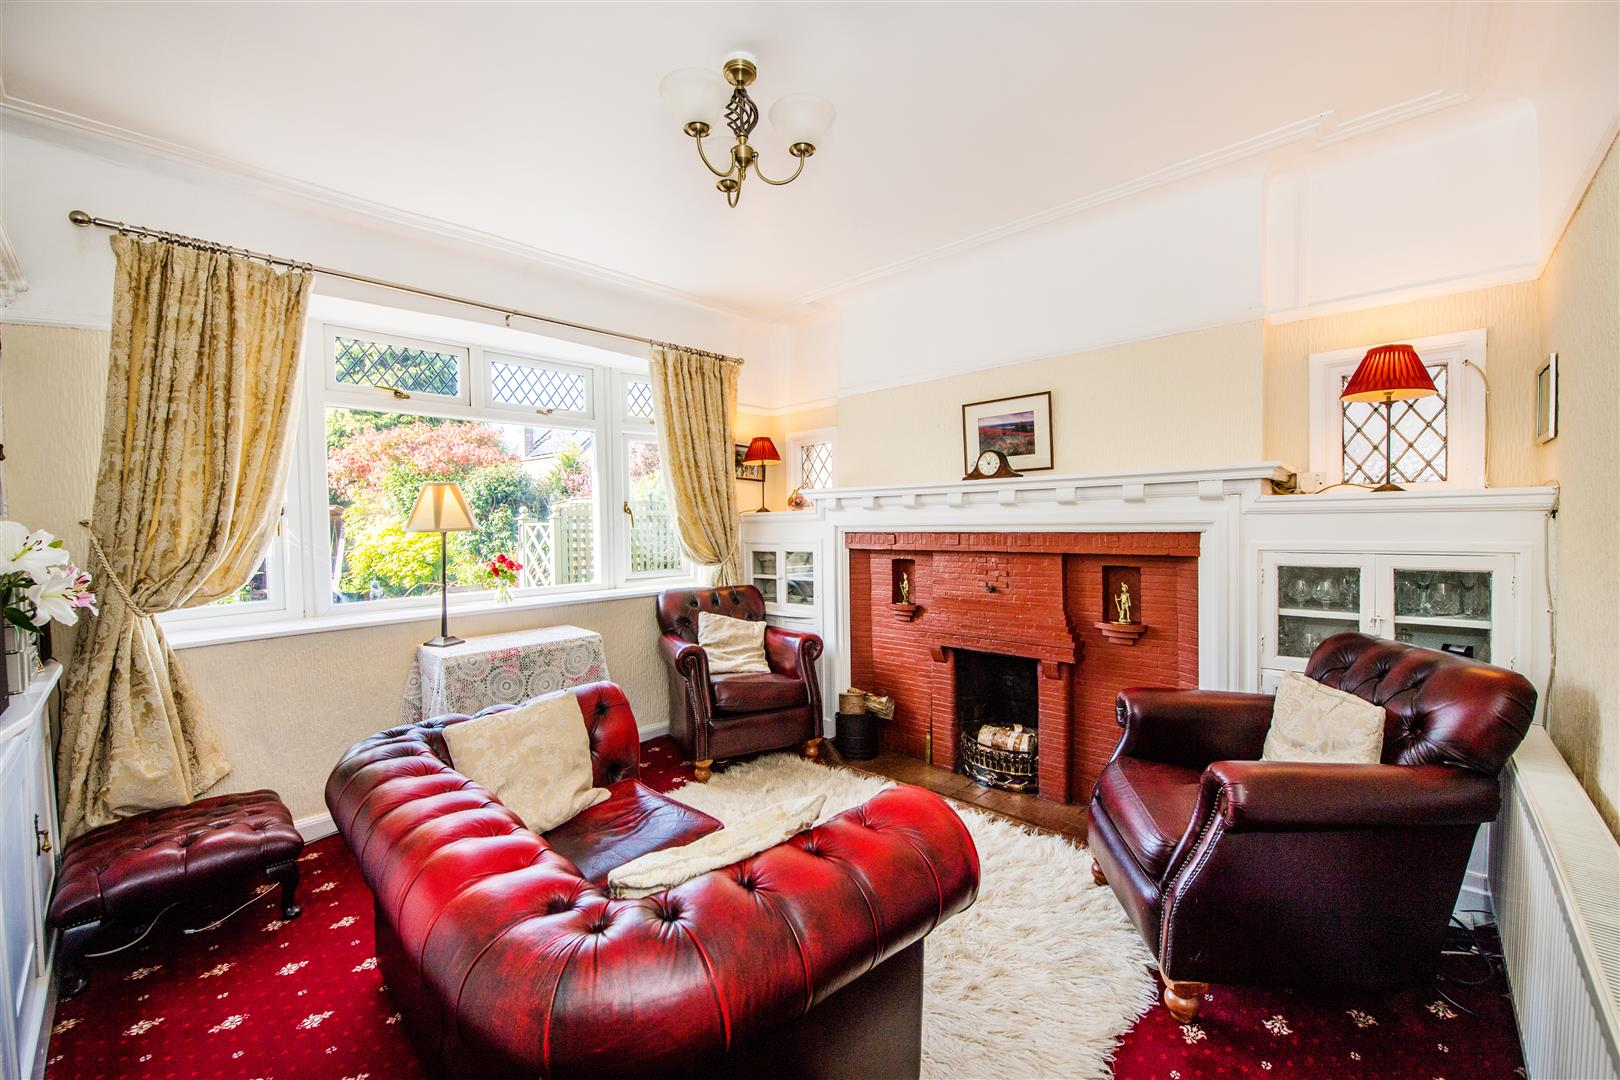 4 Bedrooms, Character Property, West Orchard Lane, Liverpool